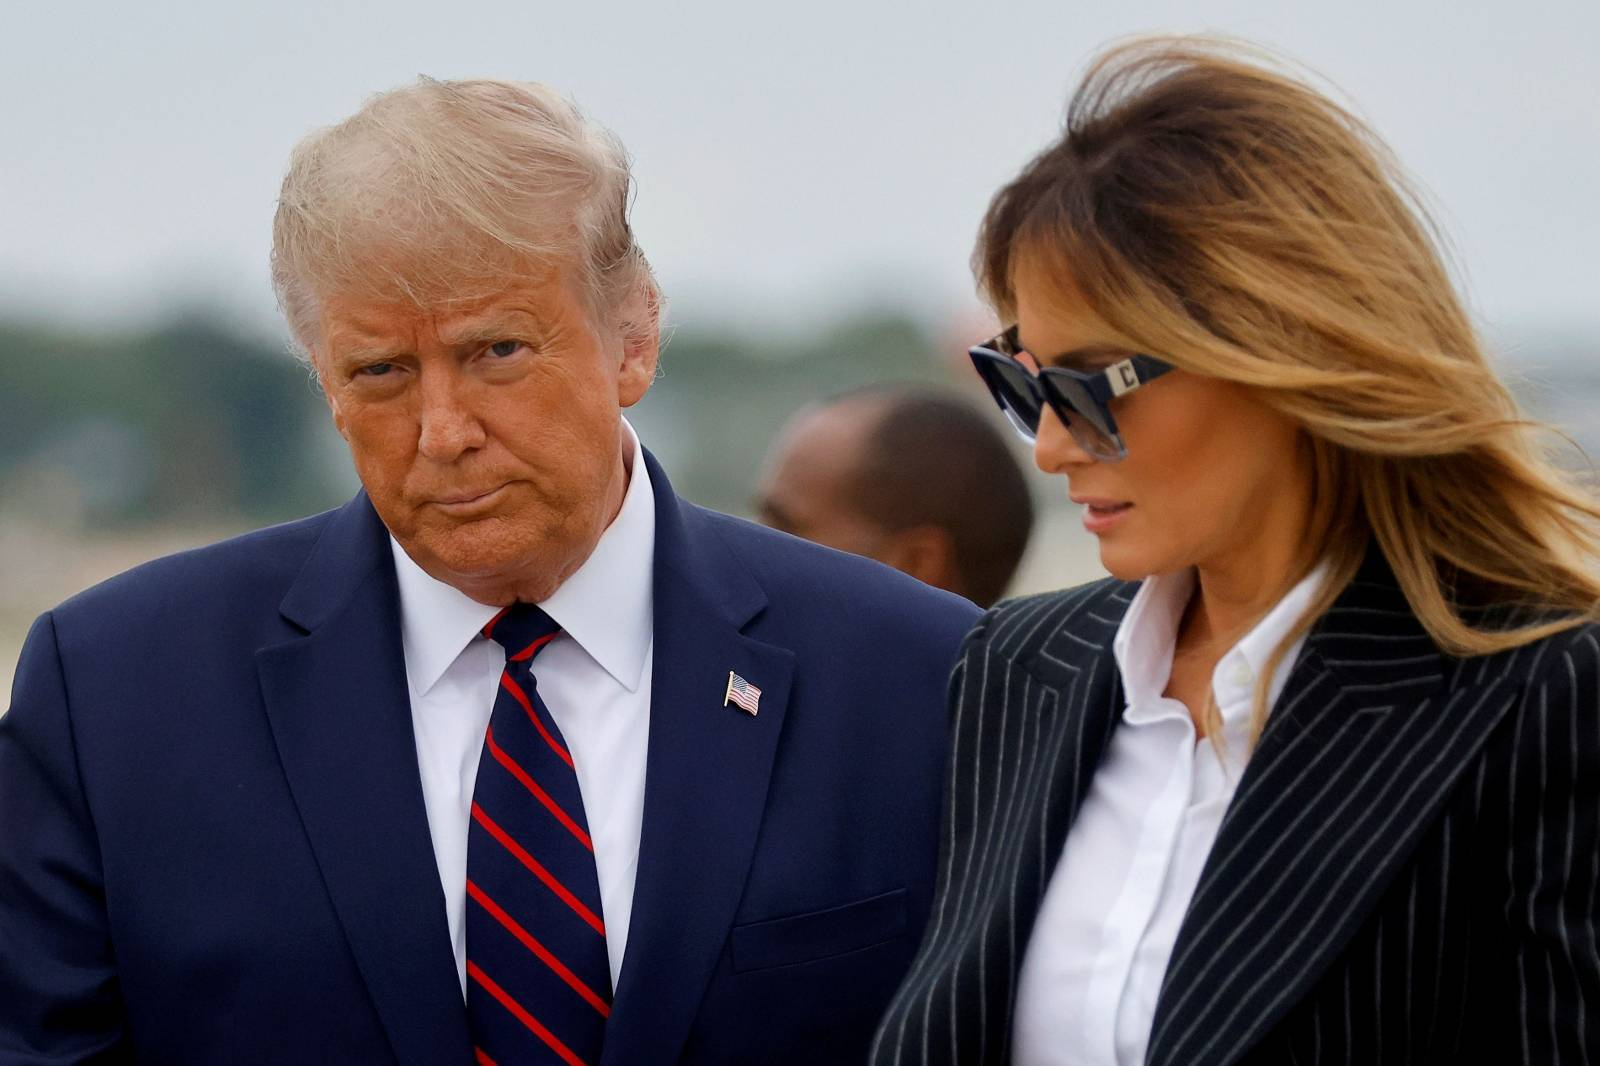 FILE PHOTO: U.S. President Donald Trump and first lady Melania Trump arrive at Cleveland Hopkins International Airport to participate in the first presidential debate with Democratic presidential nominee Joe Biden in Cleveland, Ohio